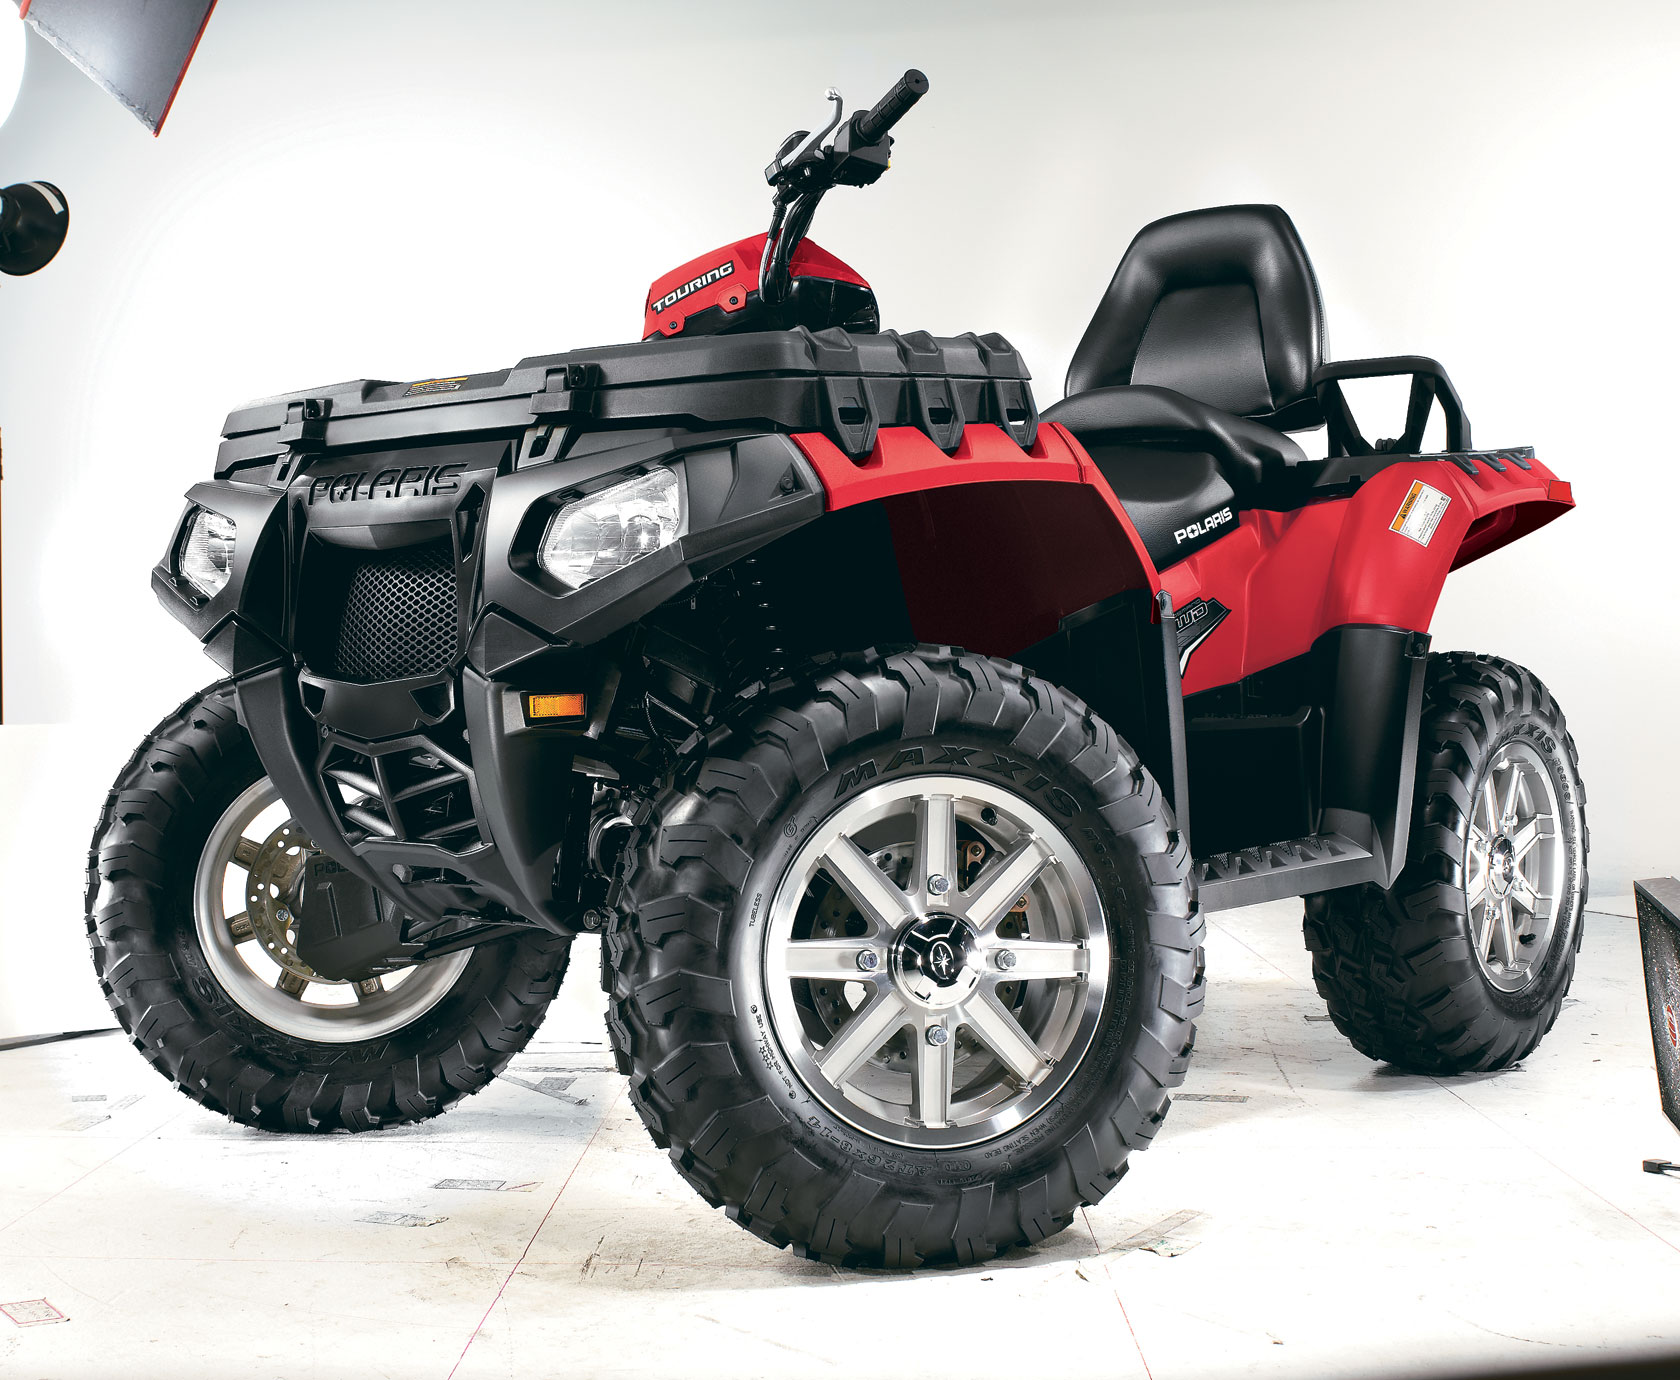 2011 Polaris Sportsman 550 Atv Repair Manual Pdf Download